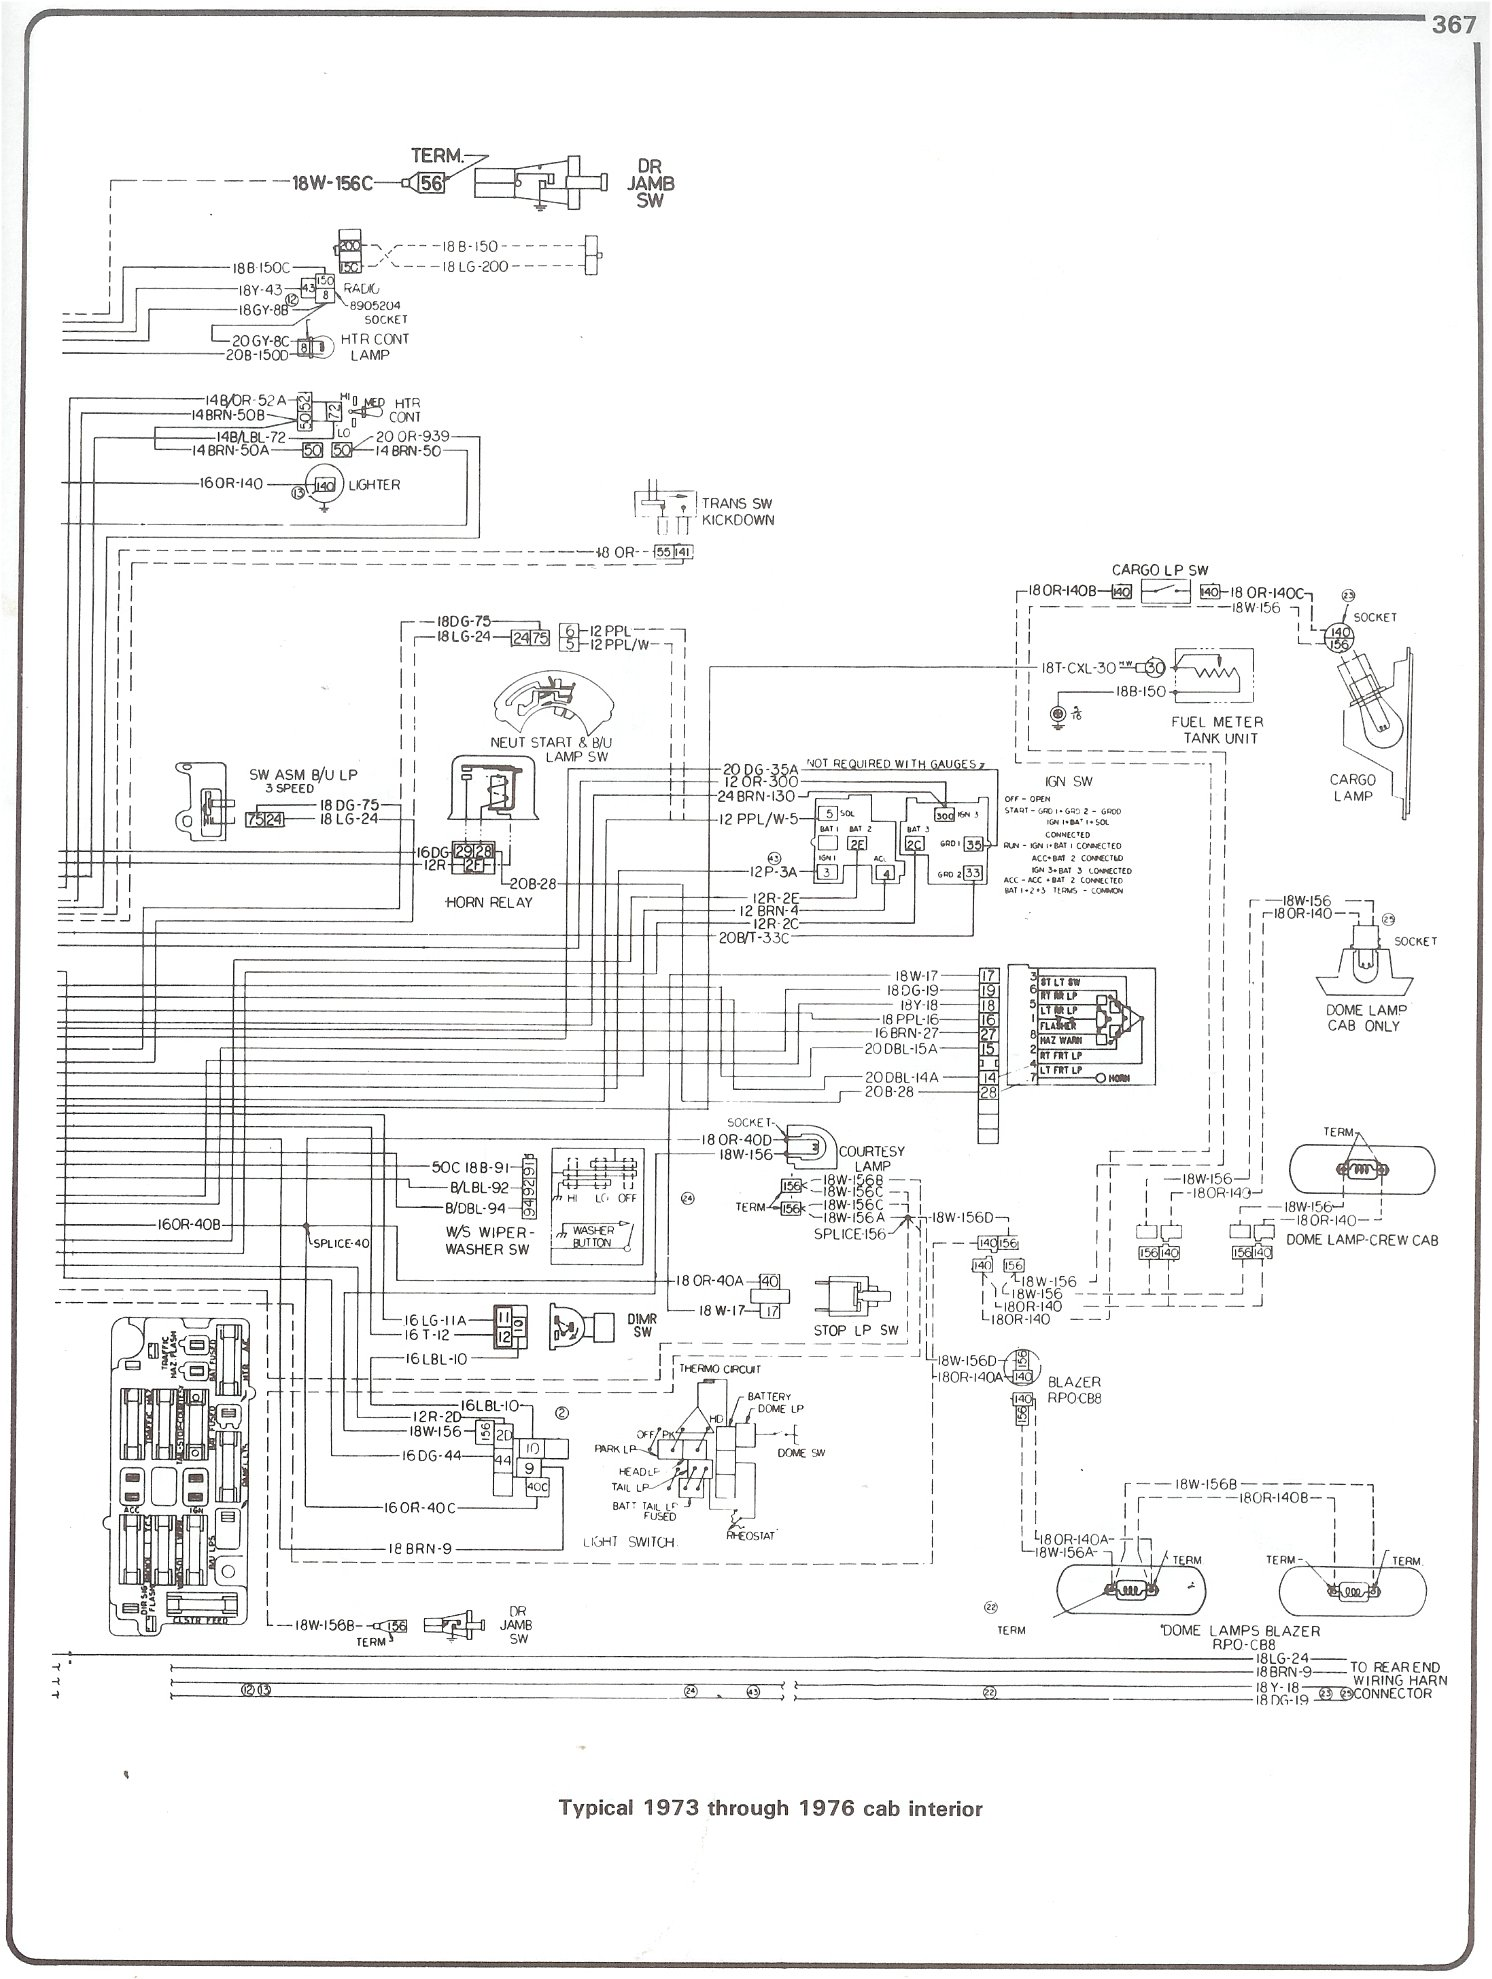 Complete 73 87 Wiring Diagrams Chevy Turn Signal Diagram Get Free Image About 76 Cab Interior